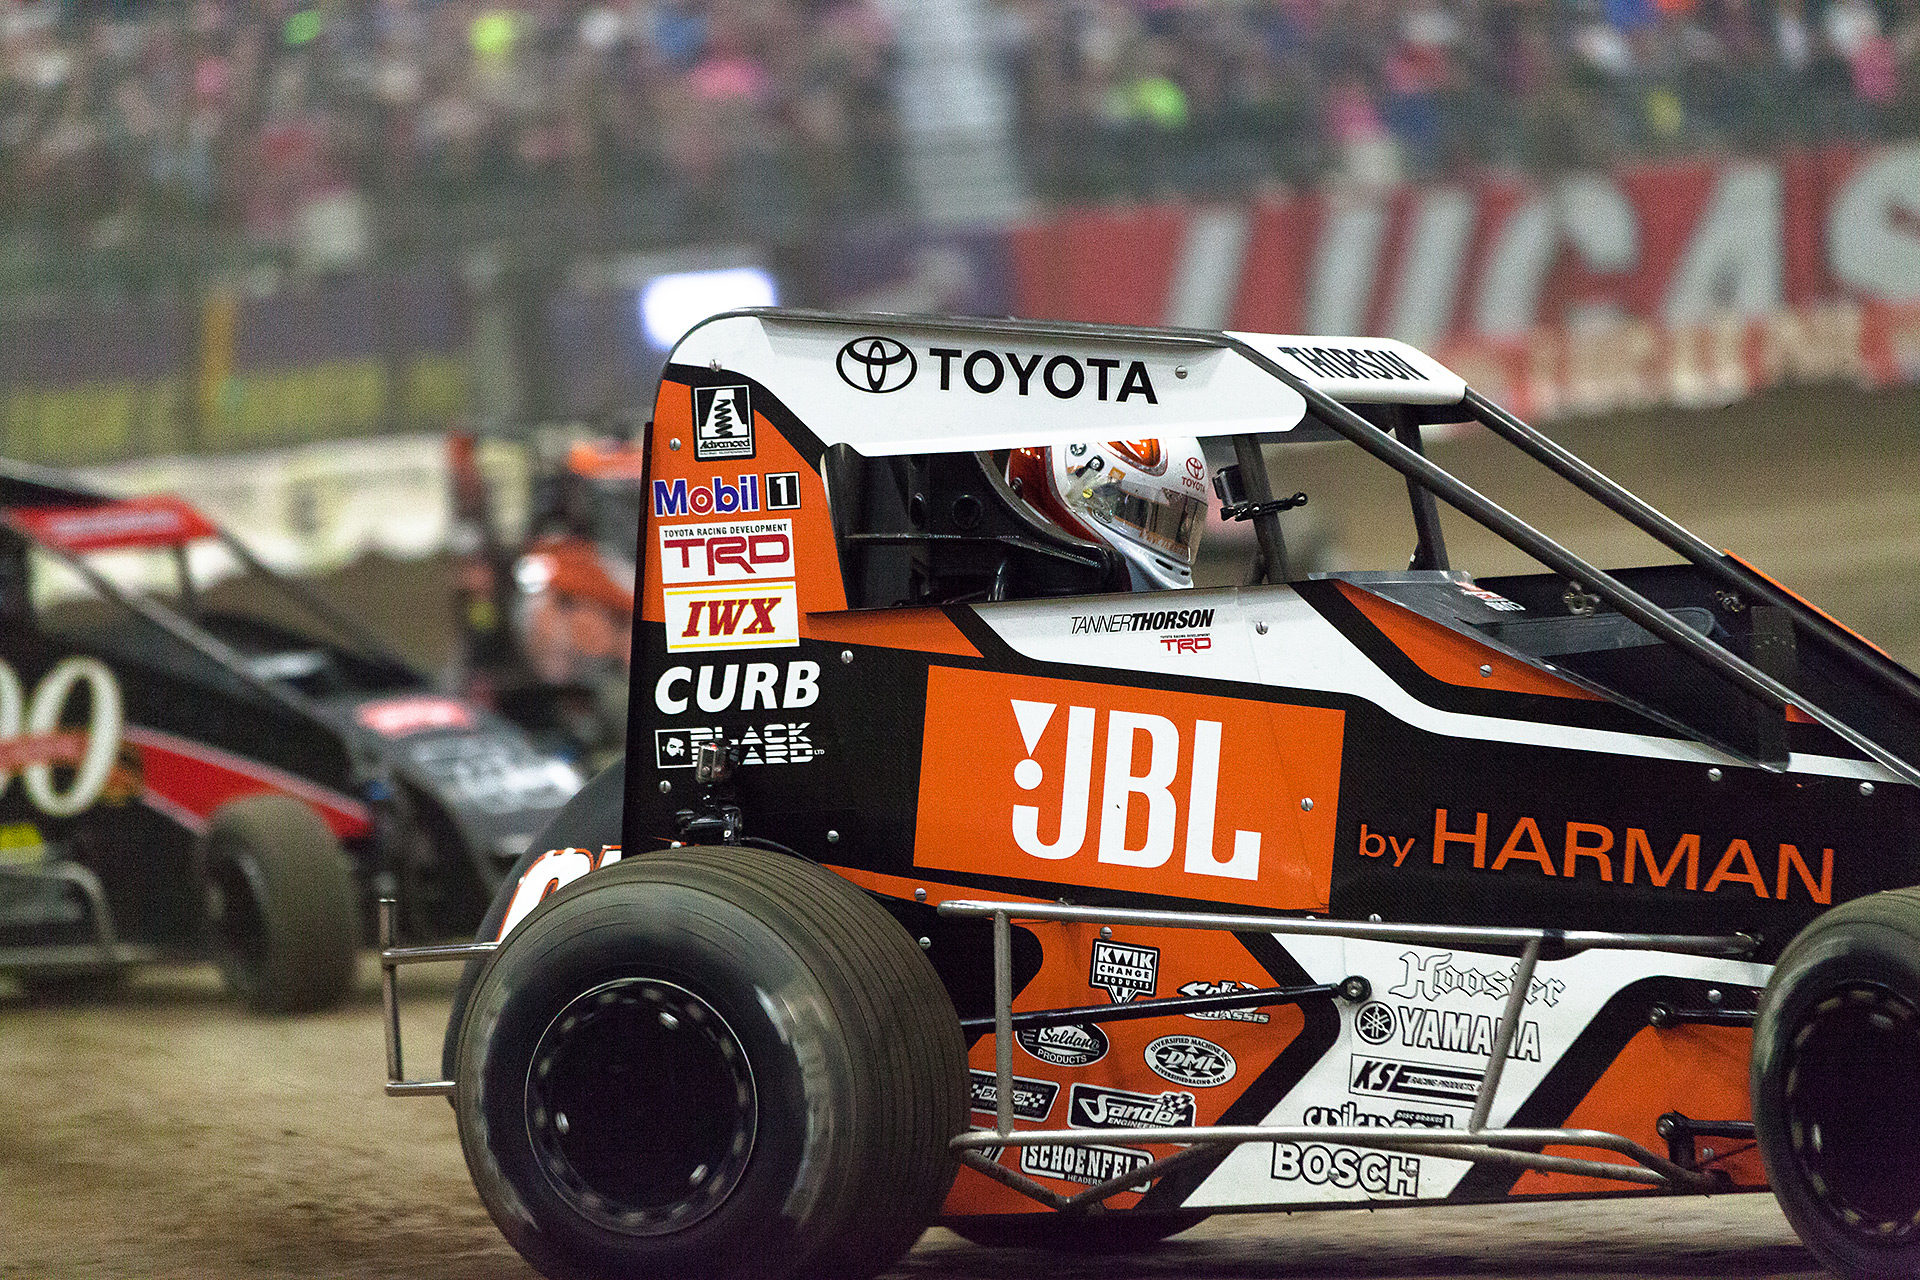 Friday January 13, 2017 TULSA, Oklahoma - Tanner Thorson throws the car into turn 1 during Heat race 10 on Vacuworx Qualifying Night of The 31st annual Lucas Oil Chili Bowl Nationals presented by General Tire.